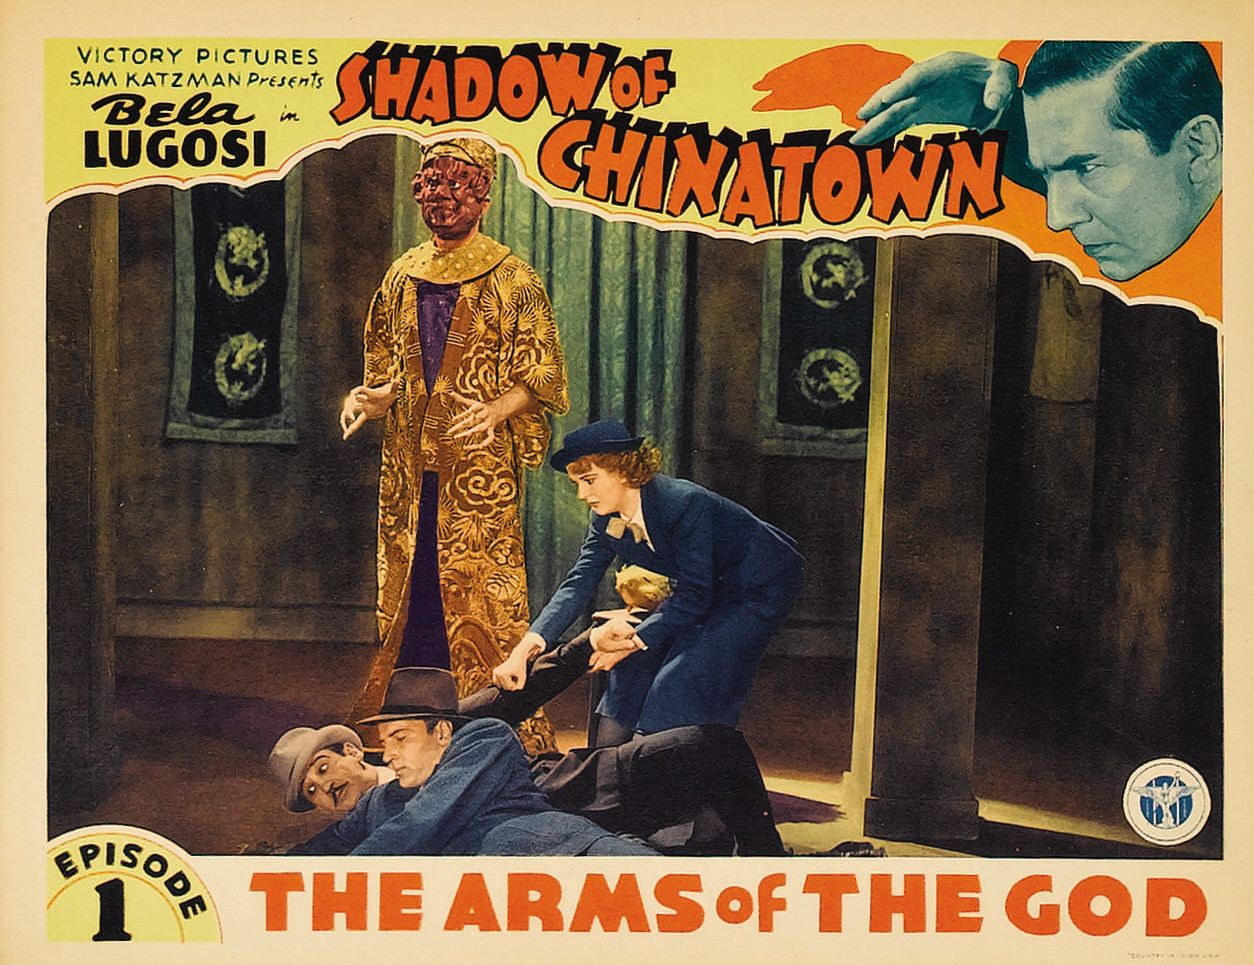 Bela Lugosi, Joan Barclay, Bruce Bennett, and Charles King in Shadow of Chinatown (1936)